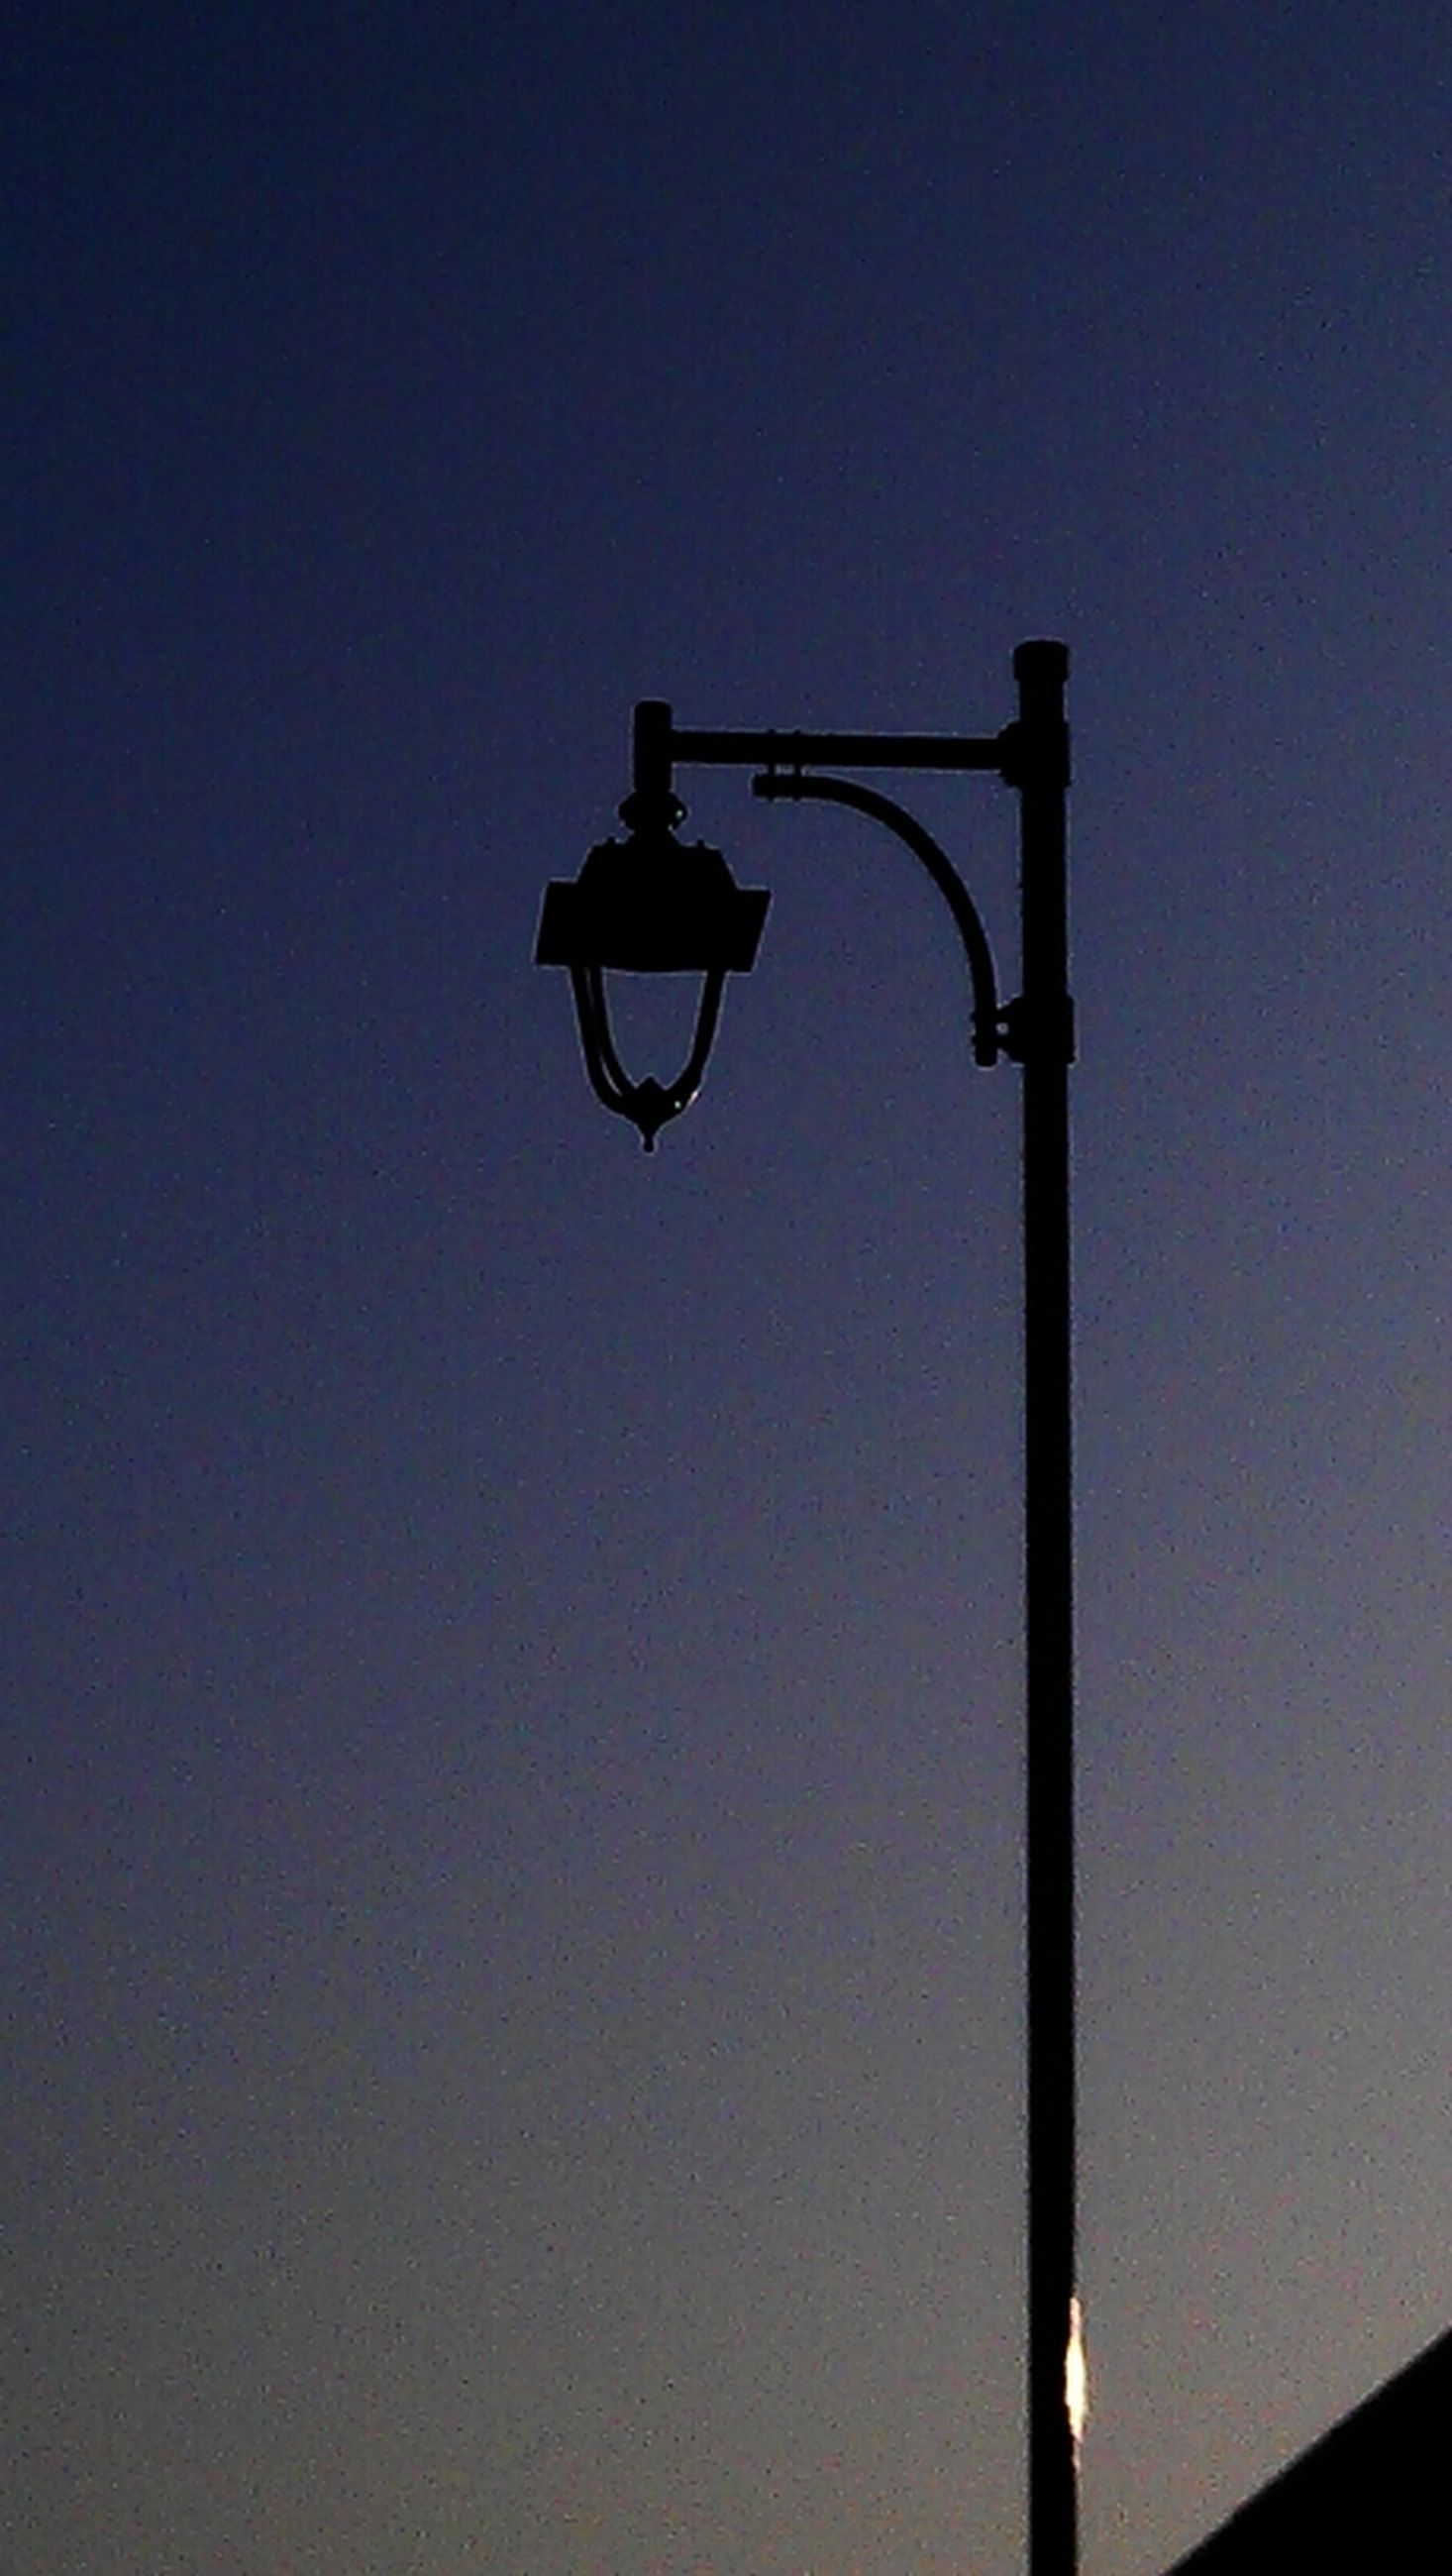 low angle view, street light, clear sky, lighting equipment, copy space, silhouette, pole, lamp post, built structure, blue, electric light, sky, architecture, no people, outdoors, cross, dusk, electricity, high section, lantern